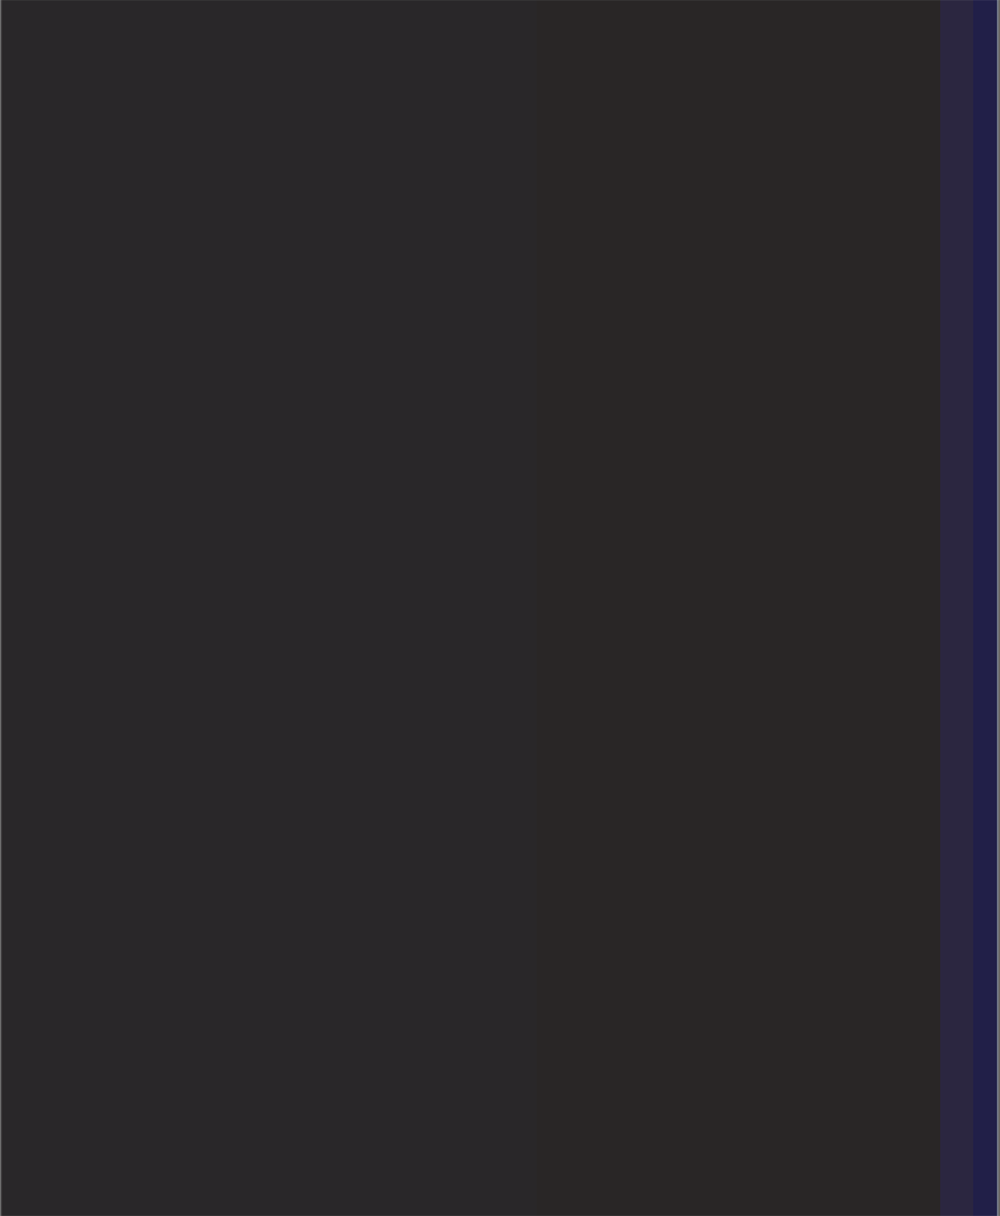 colours-20180713-sky-2.png